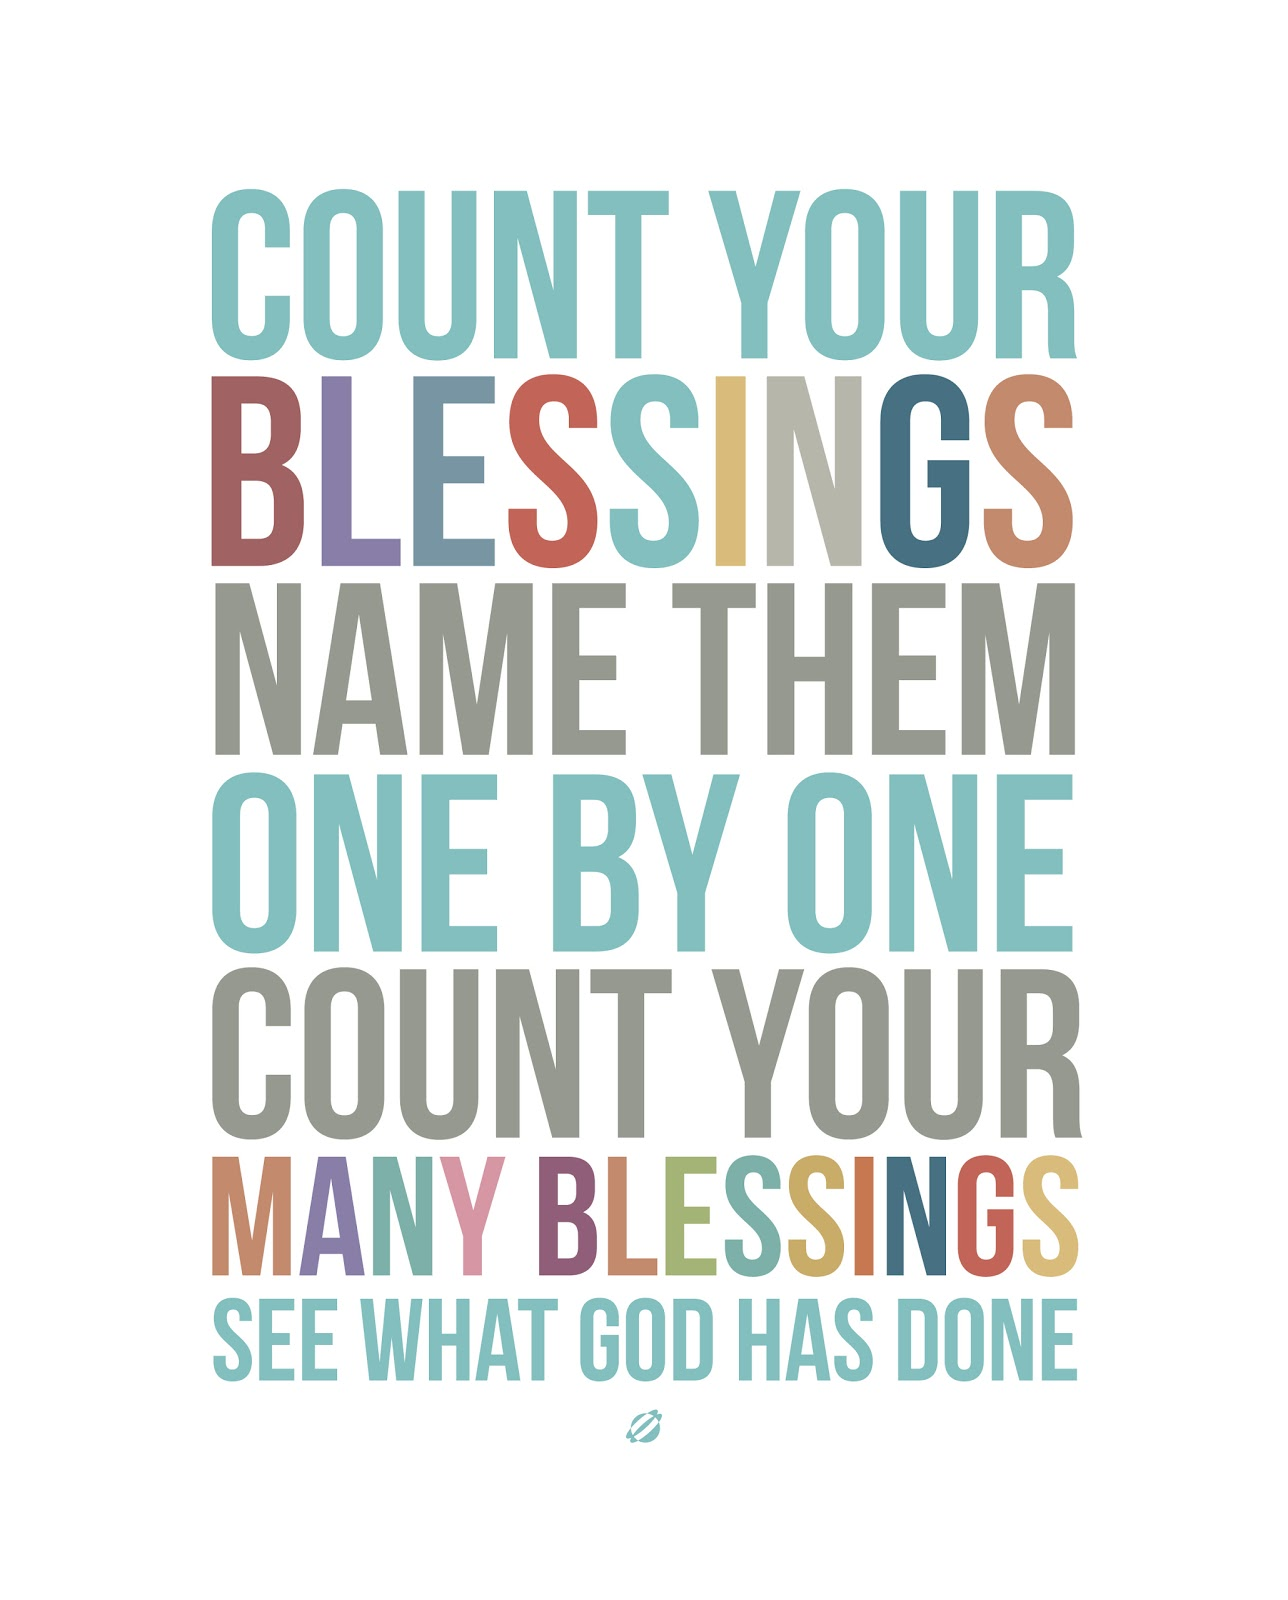 LostBumblebee 2013- COUNT YOUR BLESSINGS V2 - Free Printable